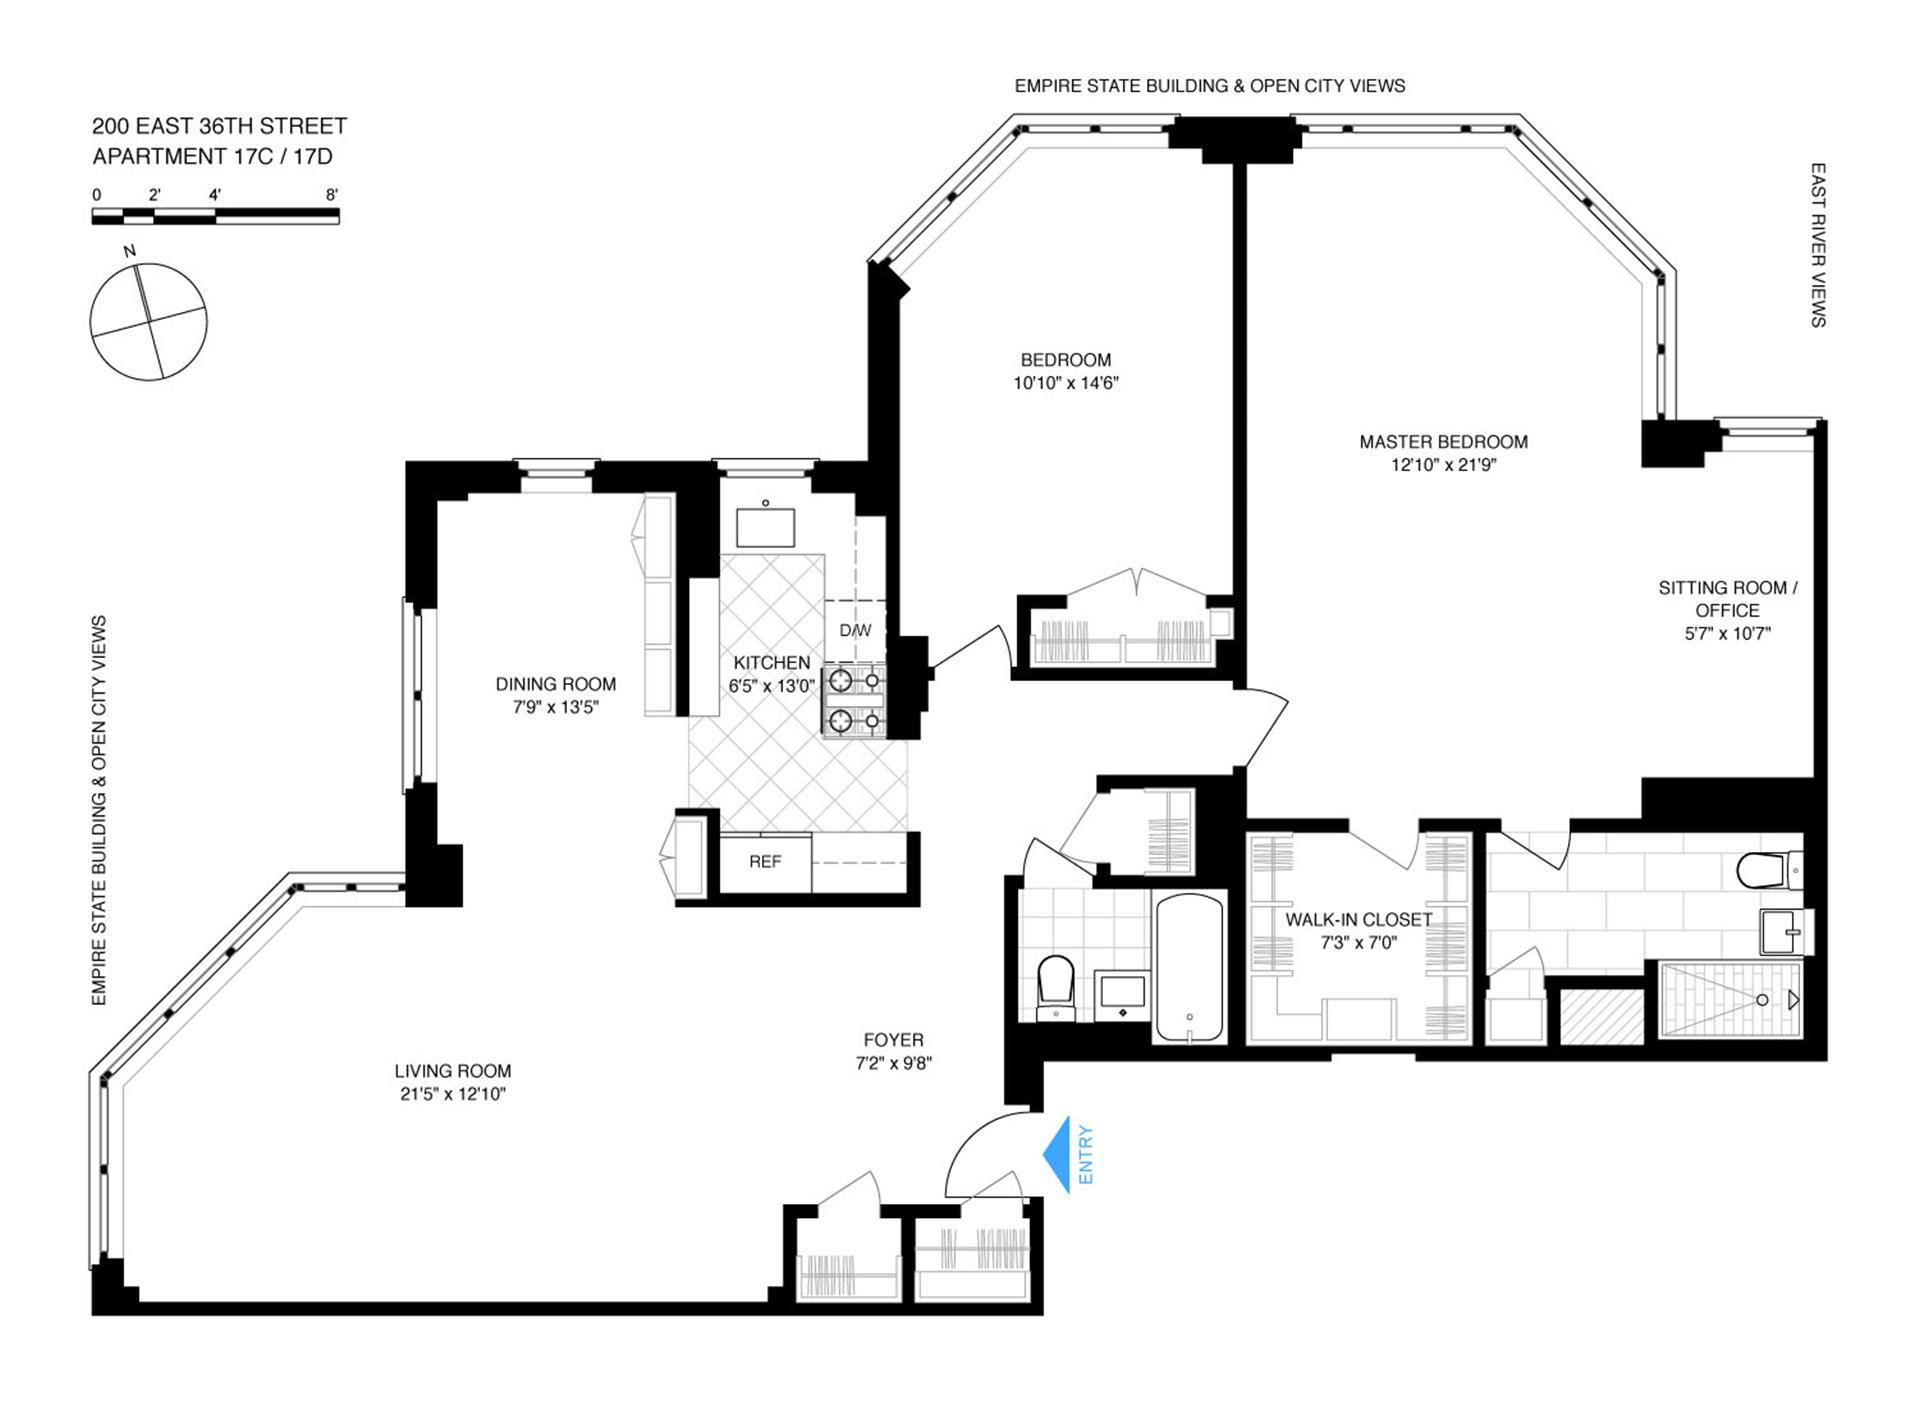 Floor plan of 200 E 36 St Owners Corp, 200 East 36th Street, 17CD - Murray Hill, New York